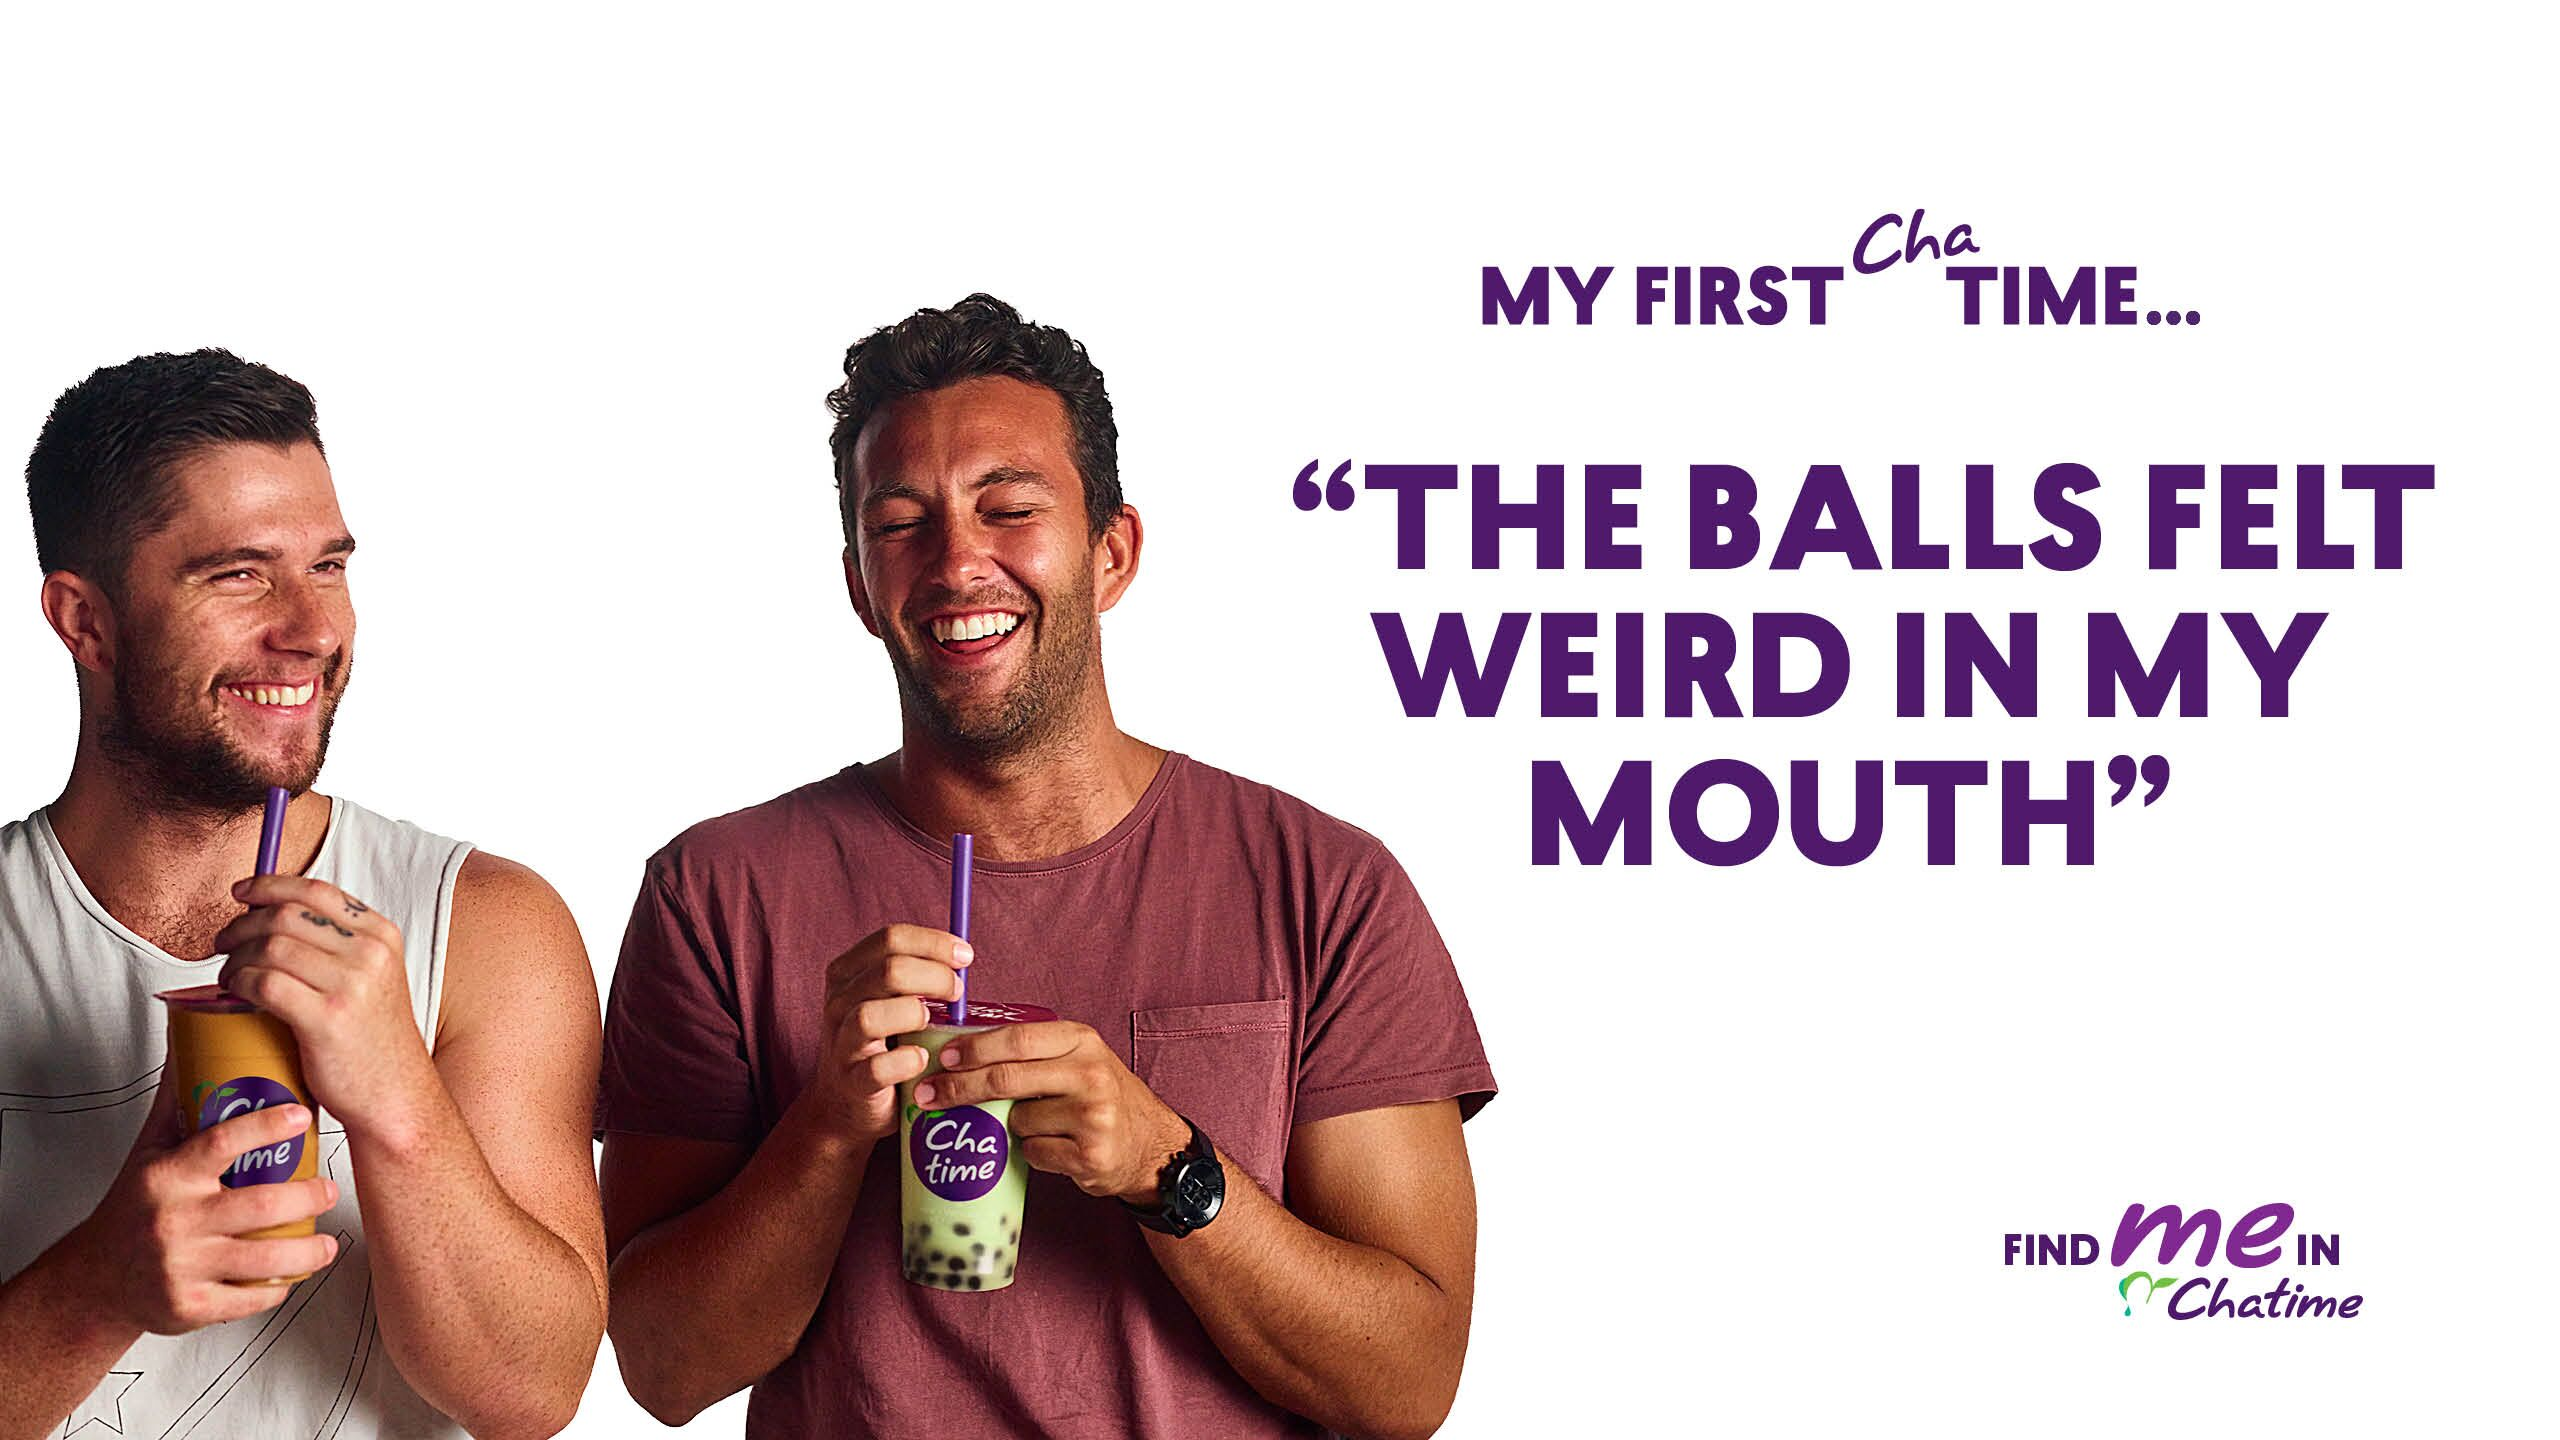 """""""The Balls Felt Weird In My Mouth"""": Chatime Launches New Cheeky Campaign"""